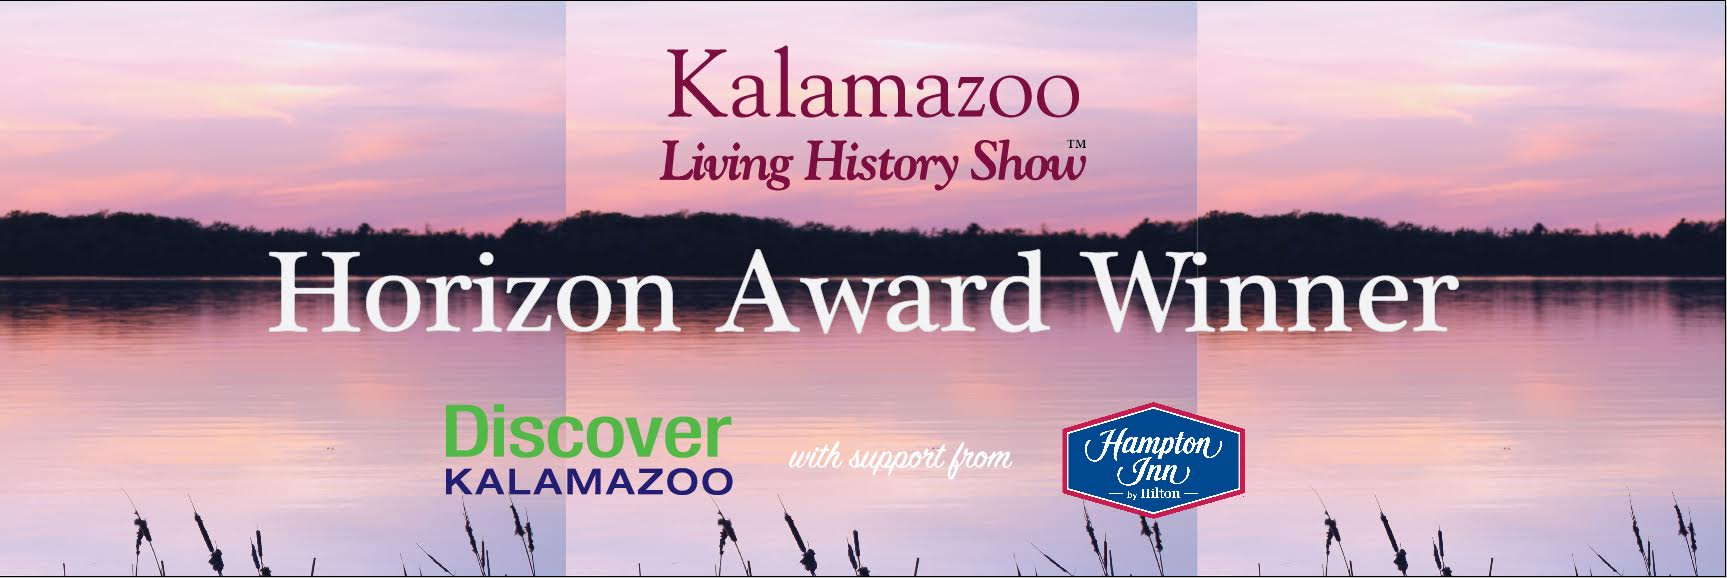 Horizon Award